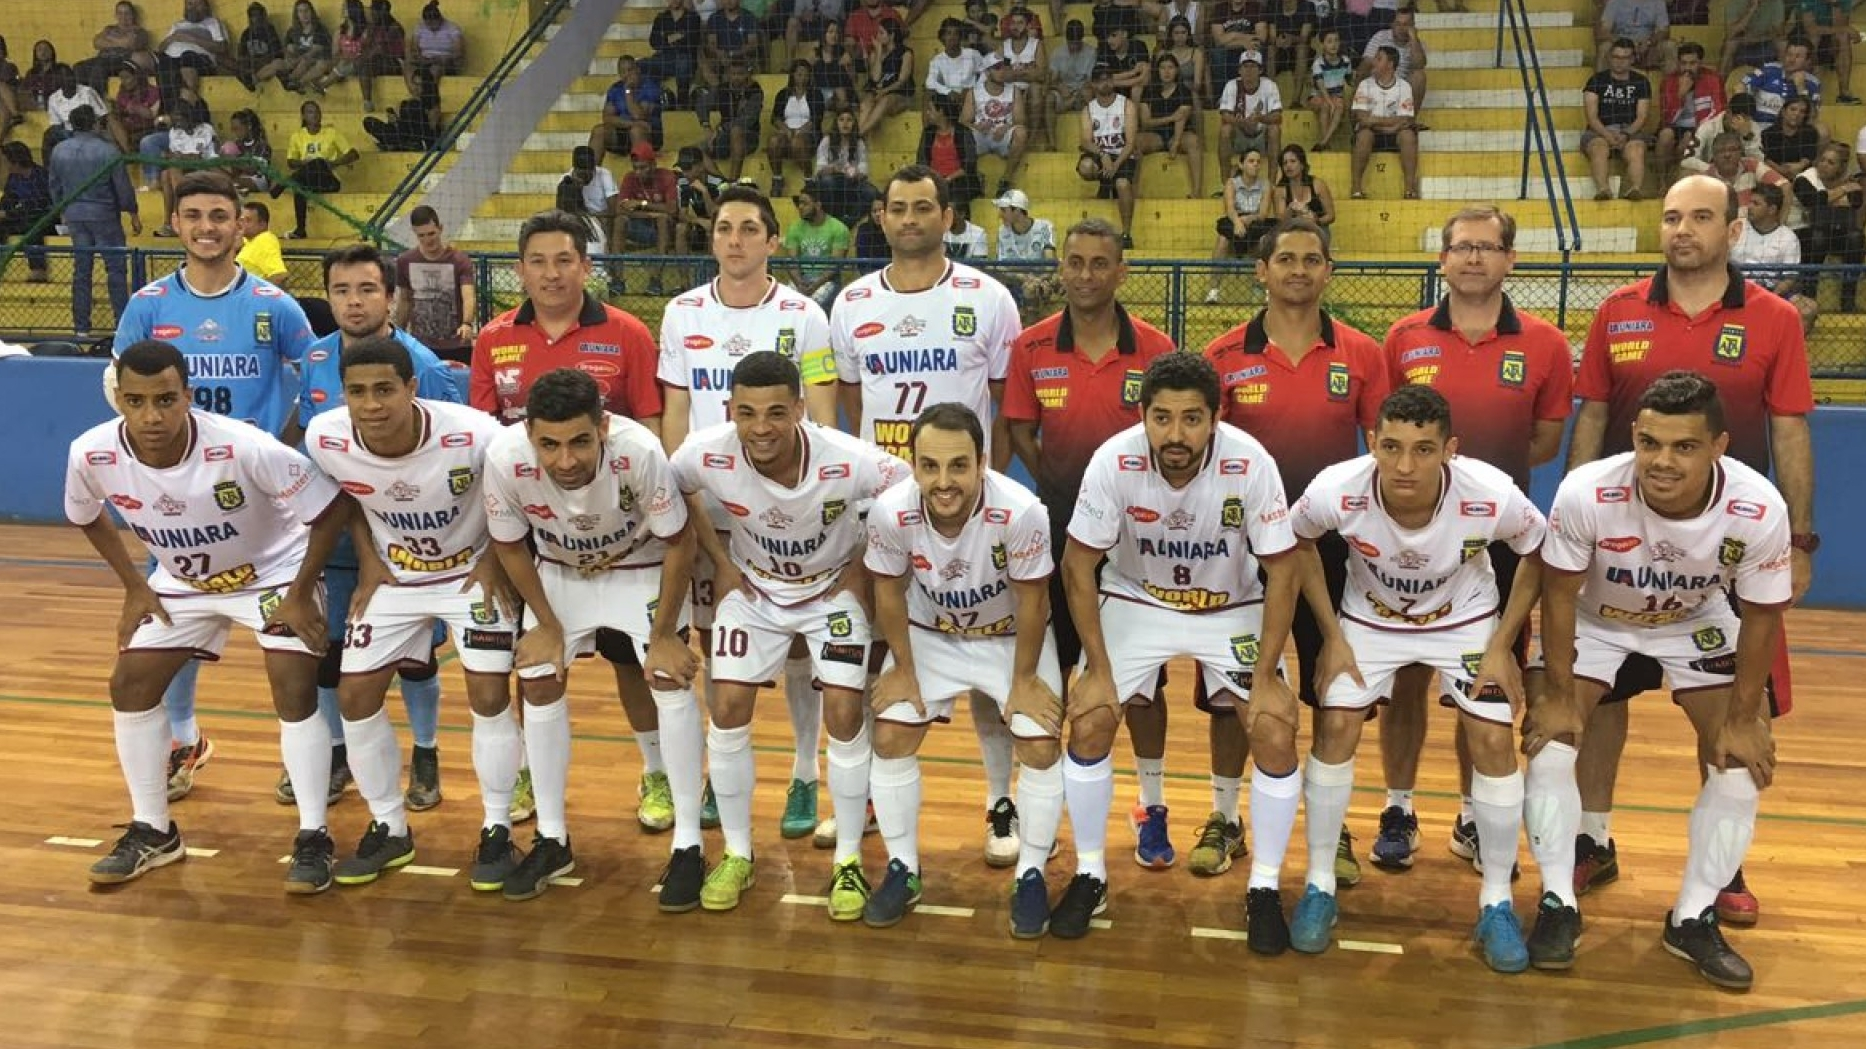 Futsal de Araraquara inicia final da Liga do Interior